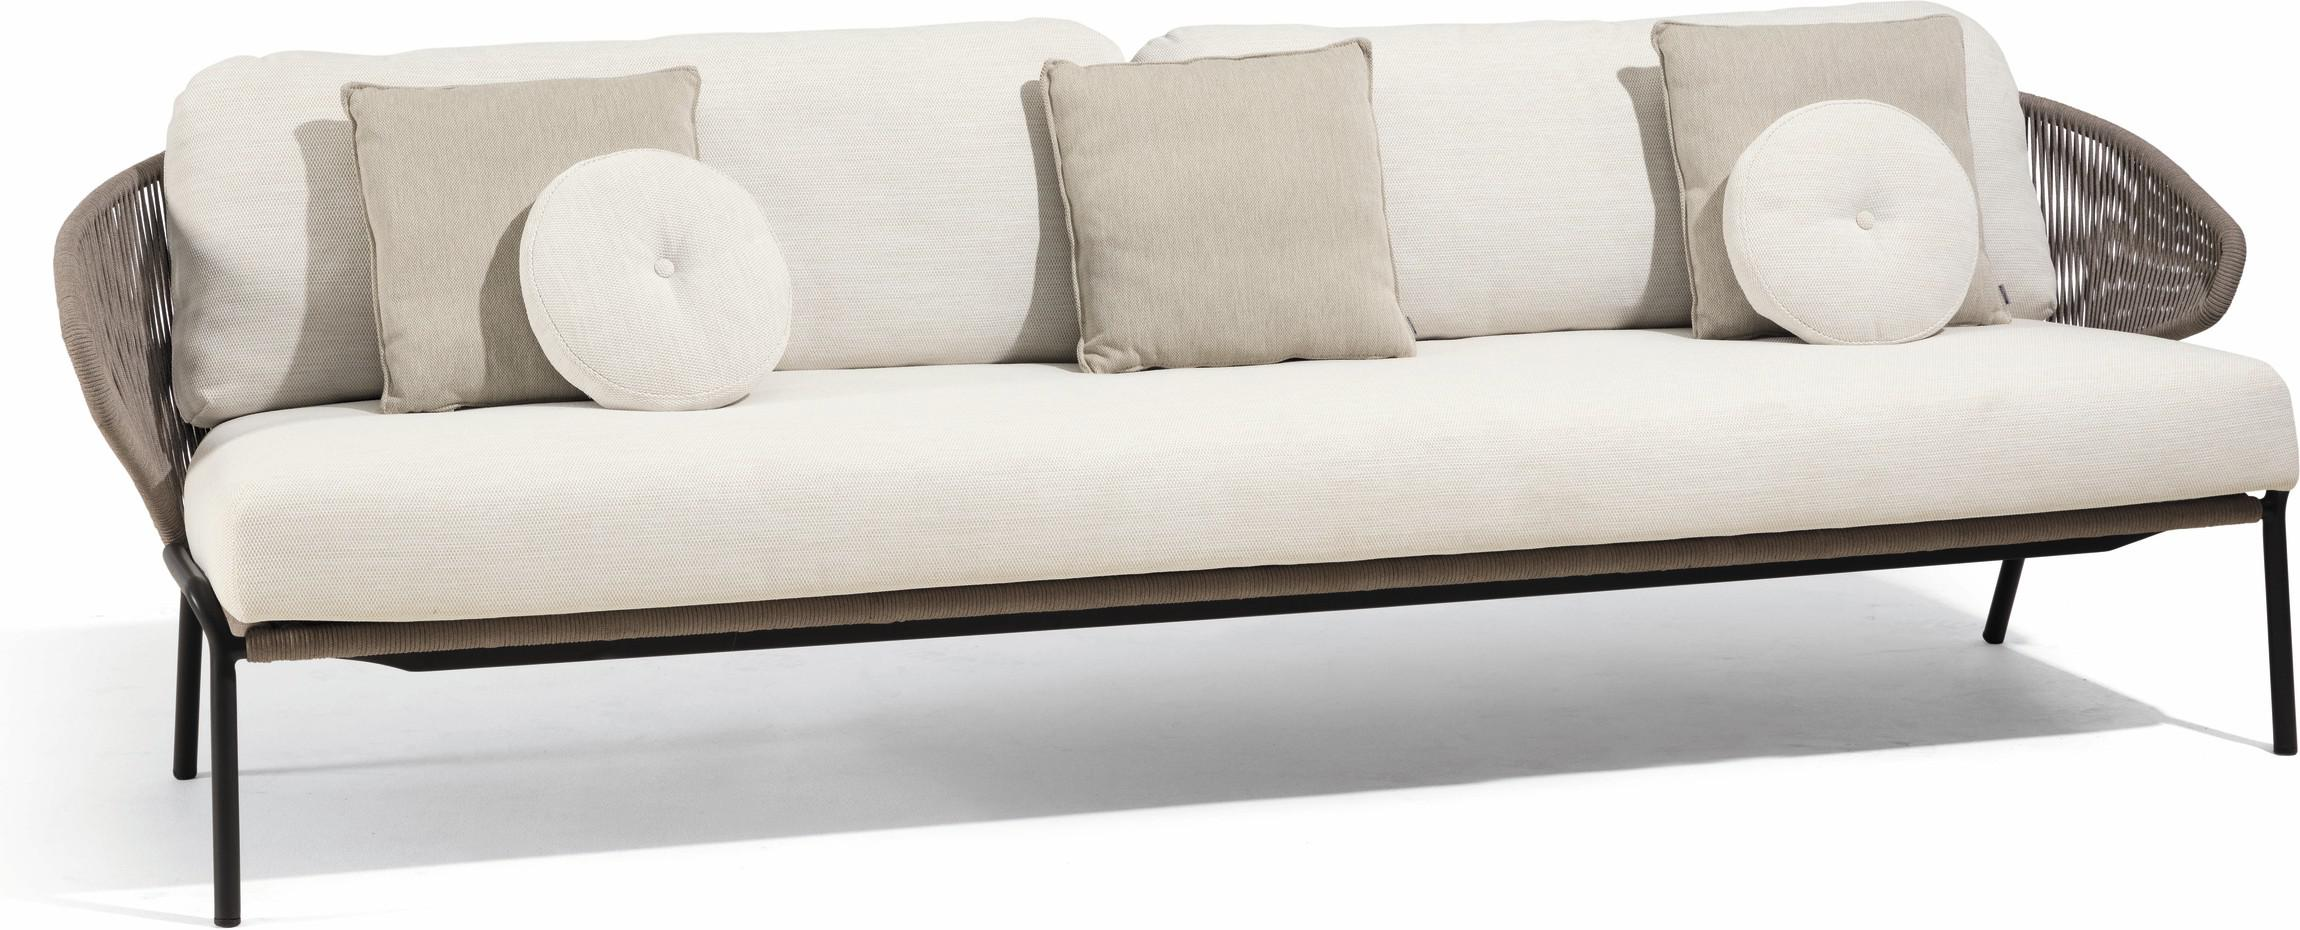 Radius 3S - Sofa fixed - lava - bronze